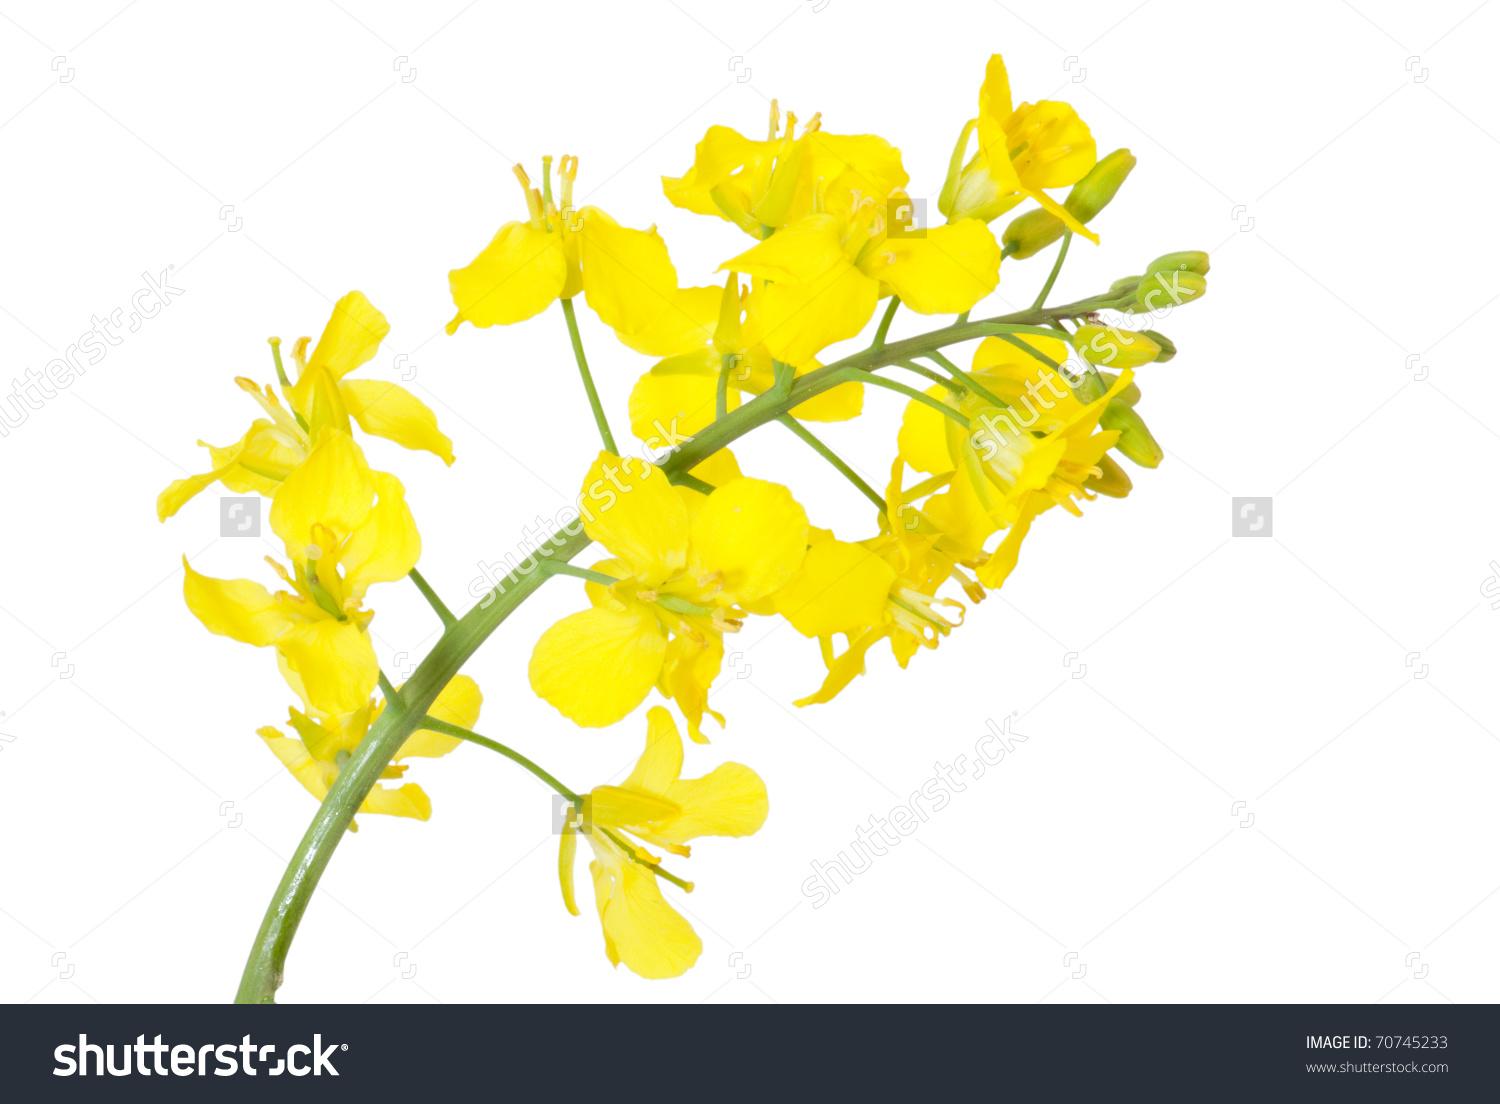 Rapeseed clipart #15, Download drawings